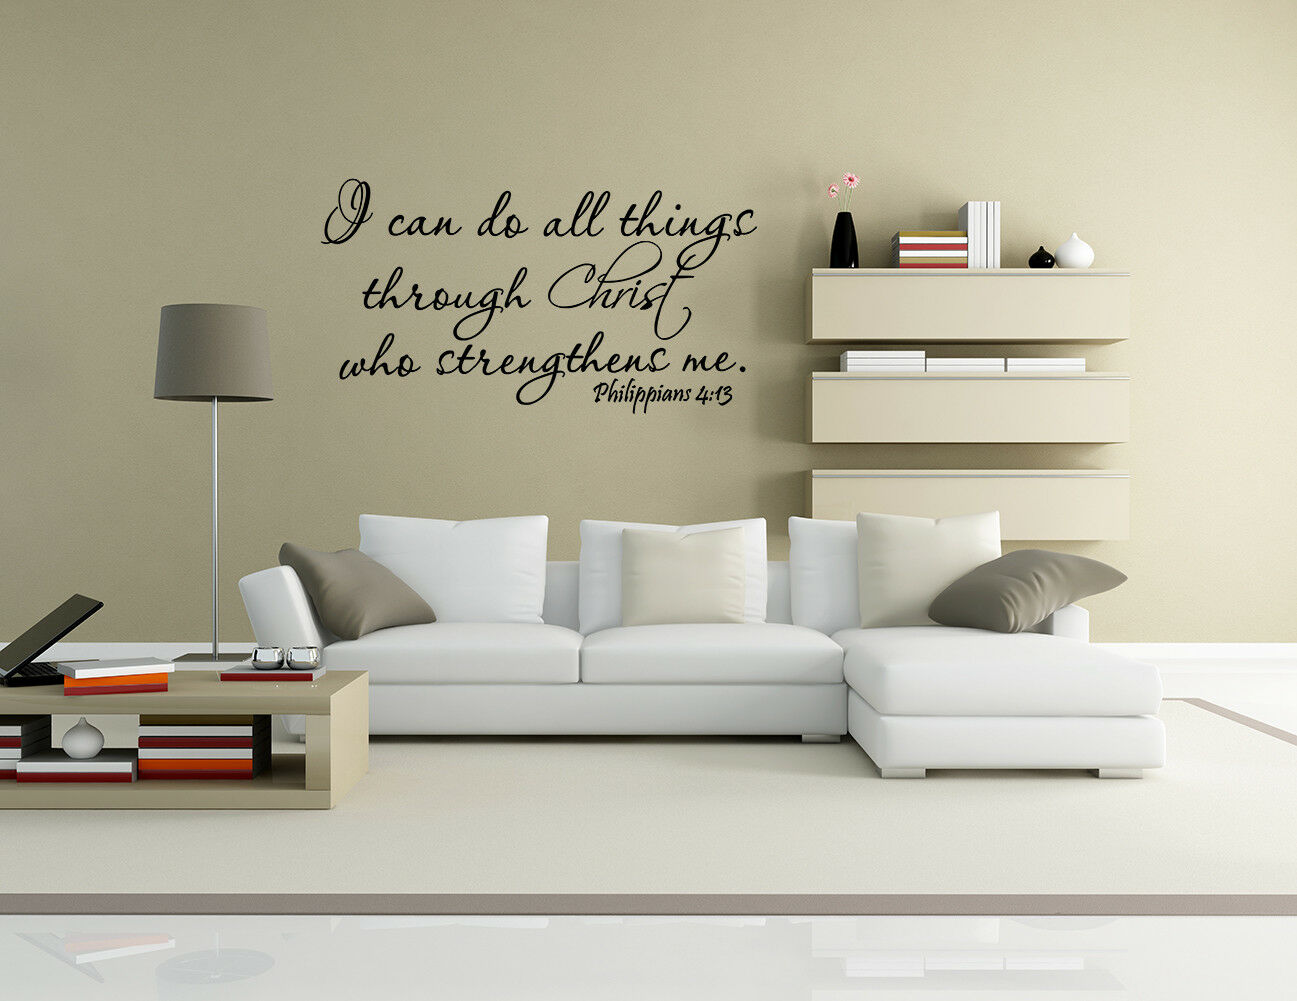 Picture 11 of 13 ... & Bible Verse Wall Decals Word Vinyl Removable Sticker Quote ...